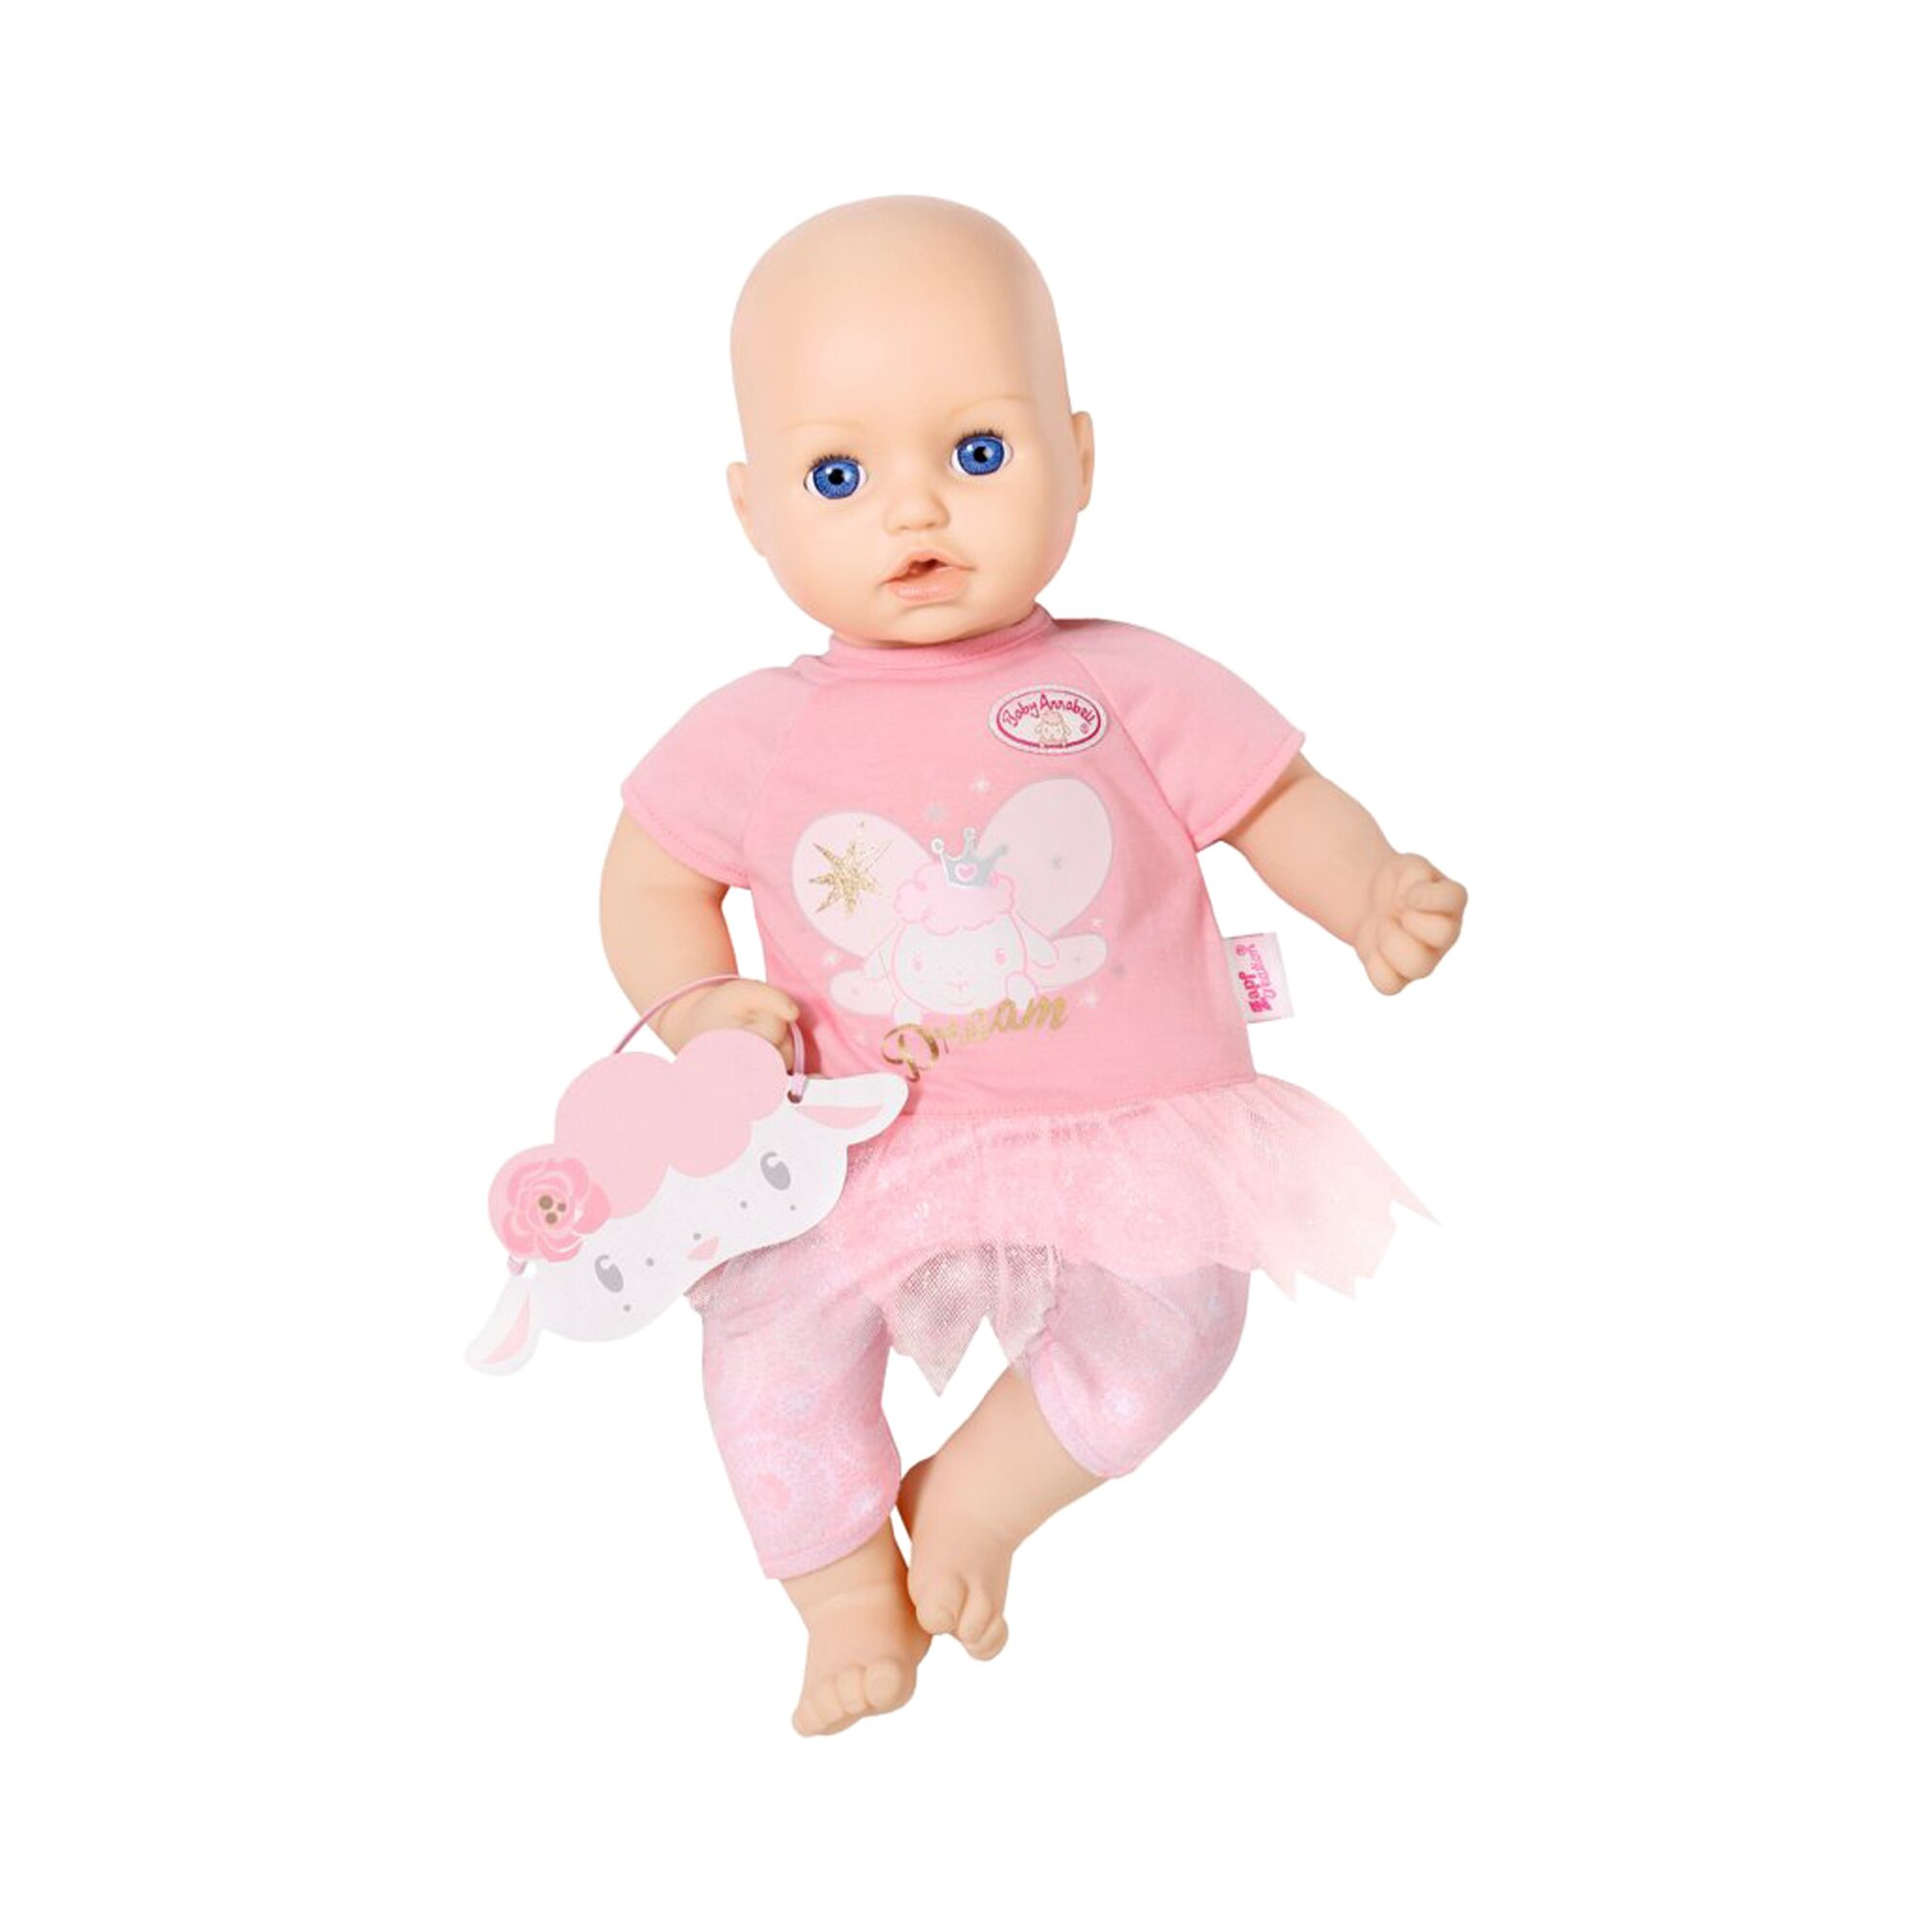 baby-annabell-puppen-outfit-sweet-dreams-nachtfee-43cm